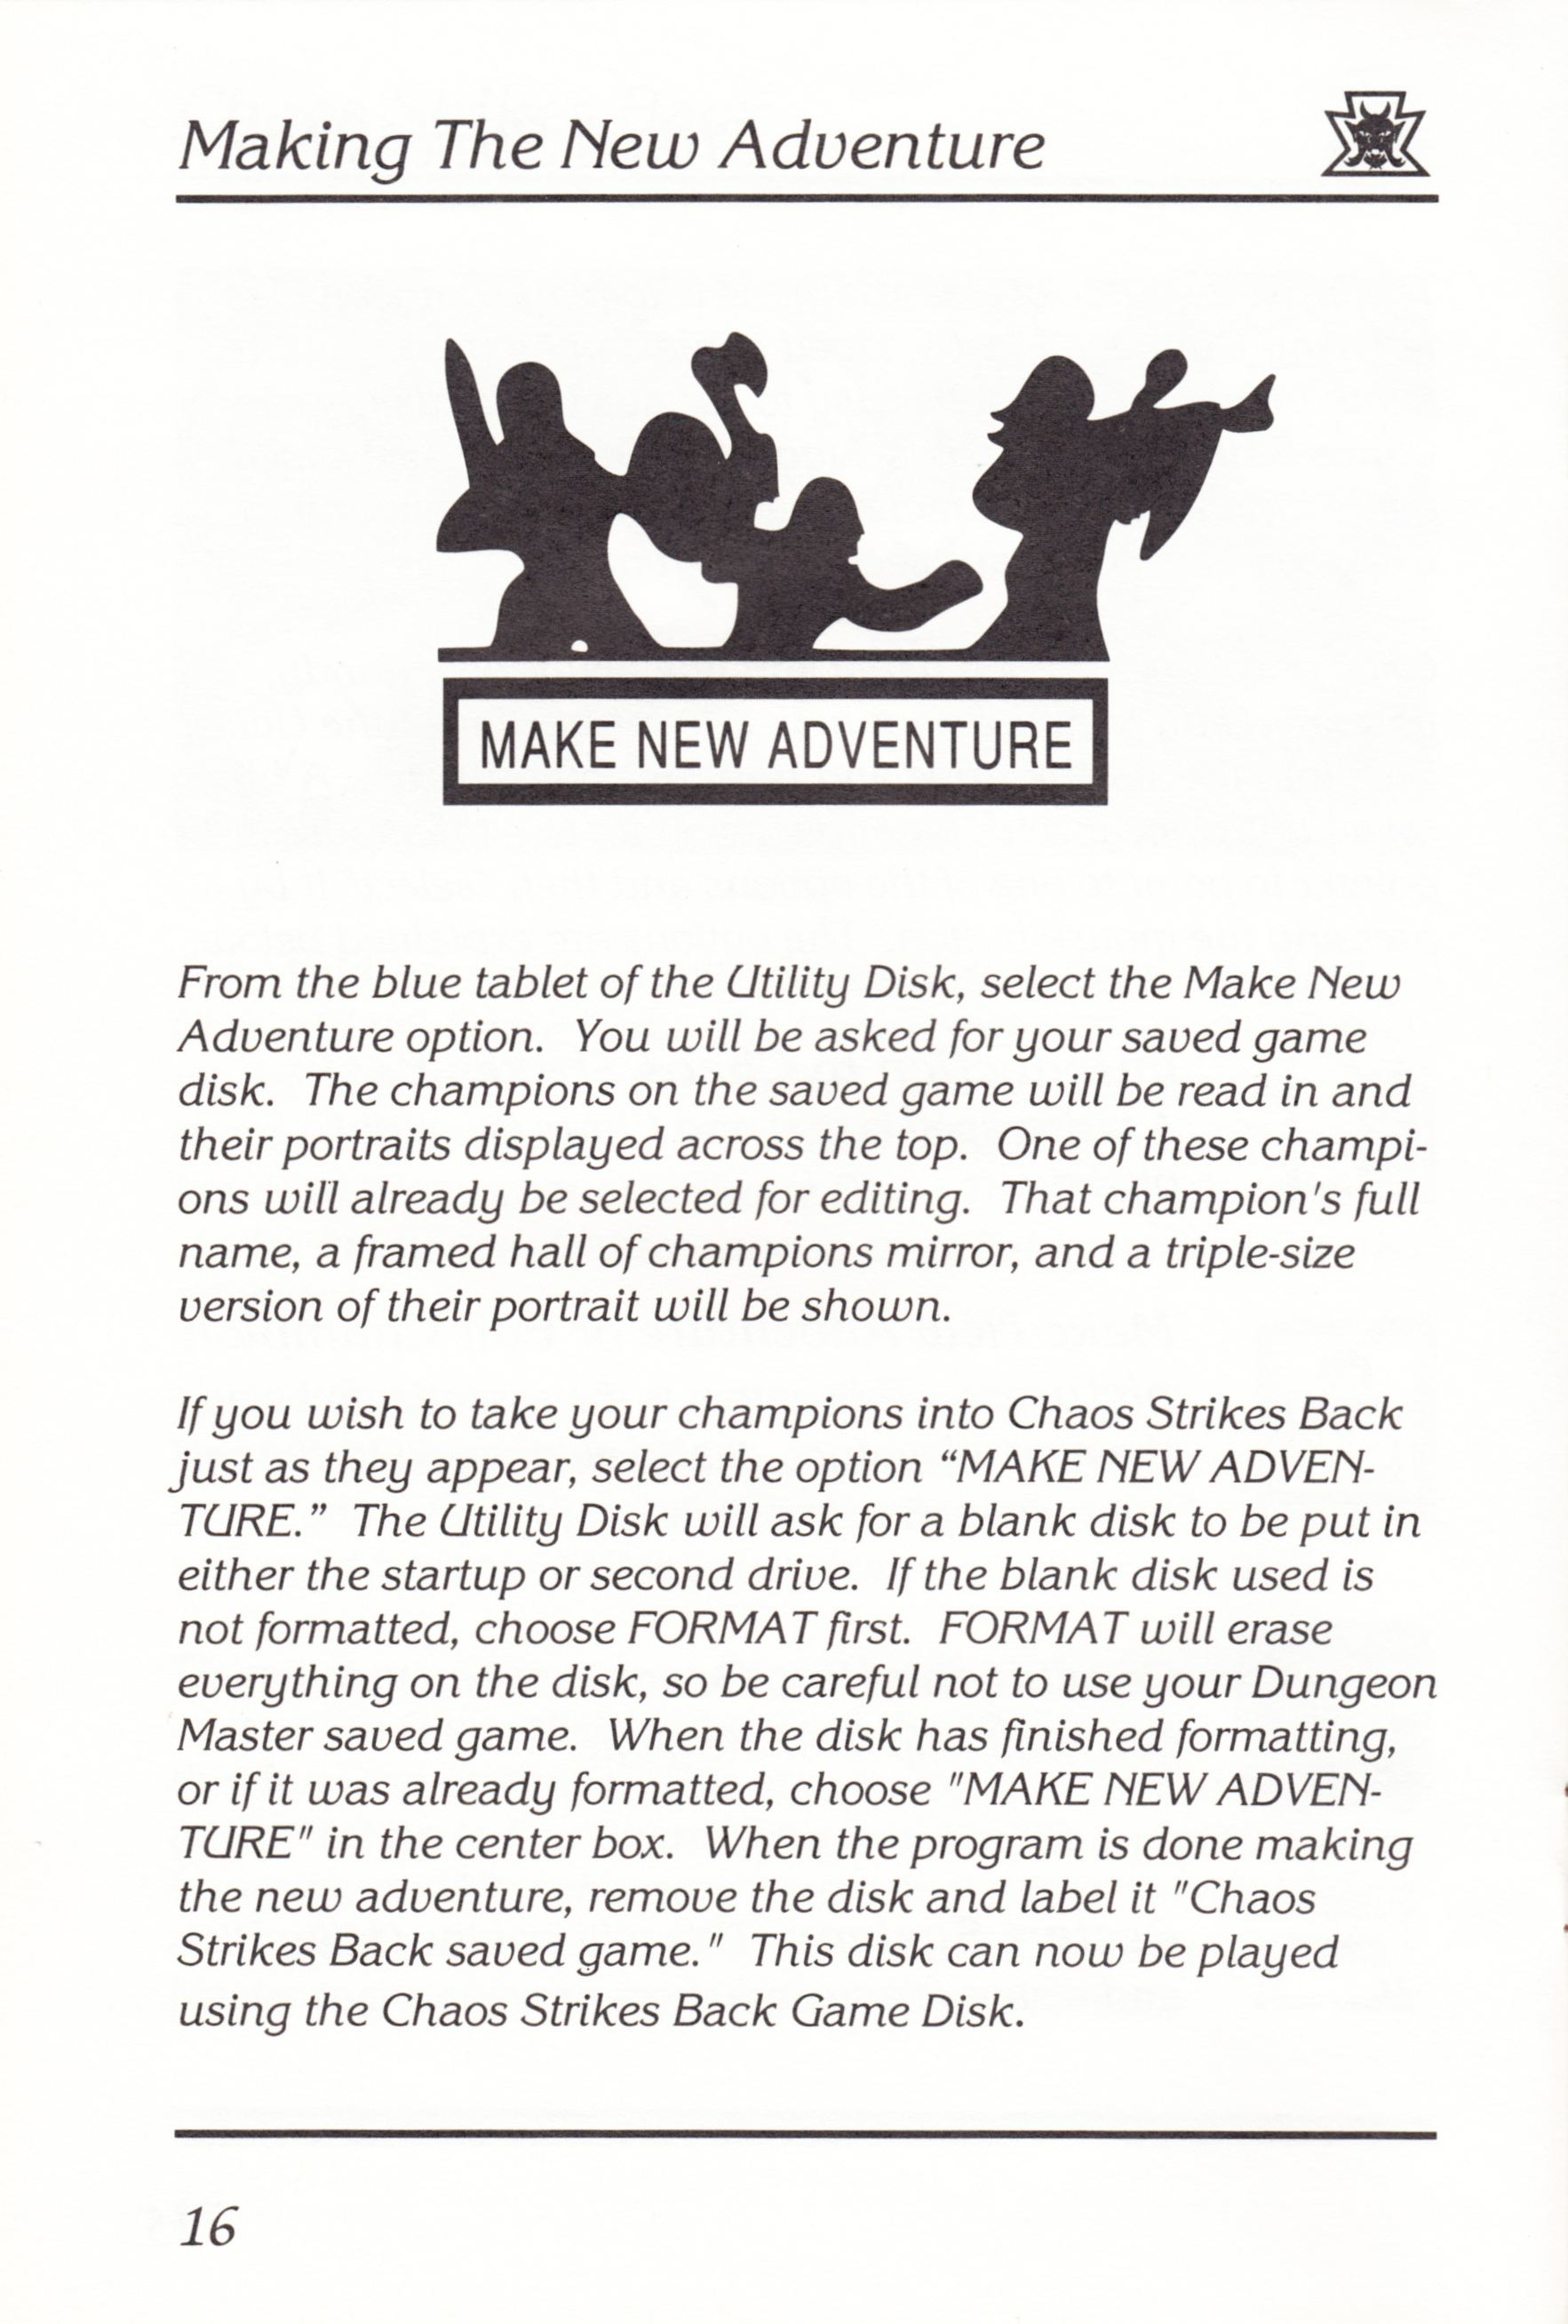 Game - Chaos Strikes Back - UK - Atari ST - Manual - Page 018 - Scan